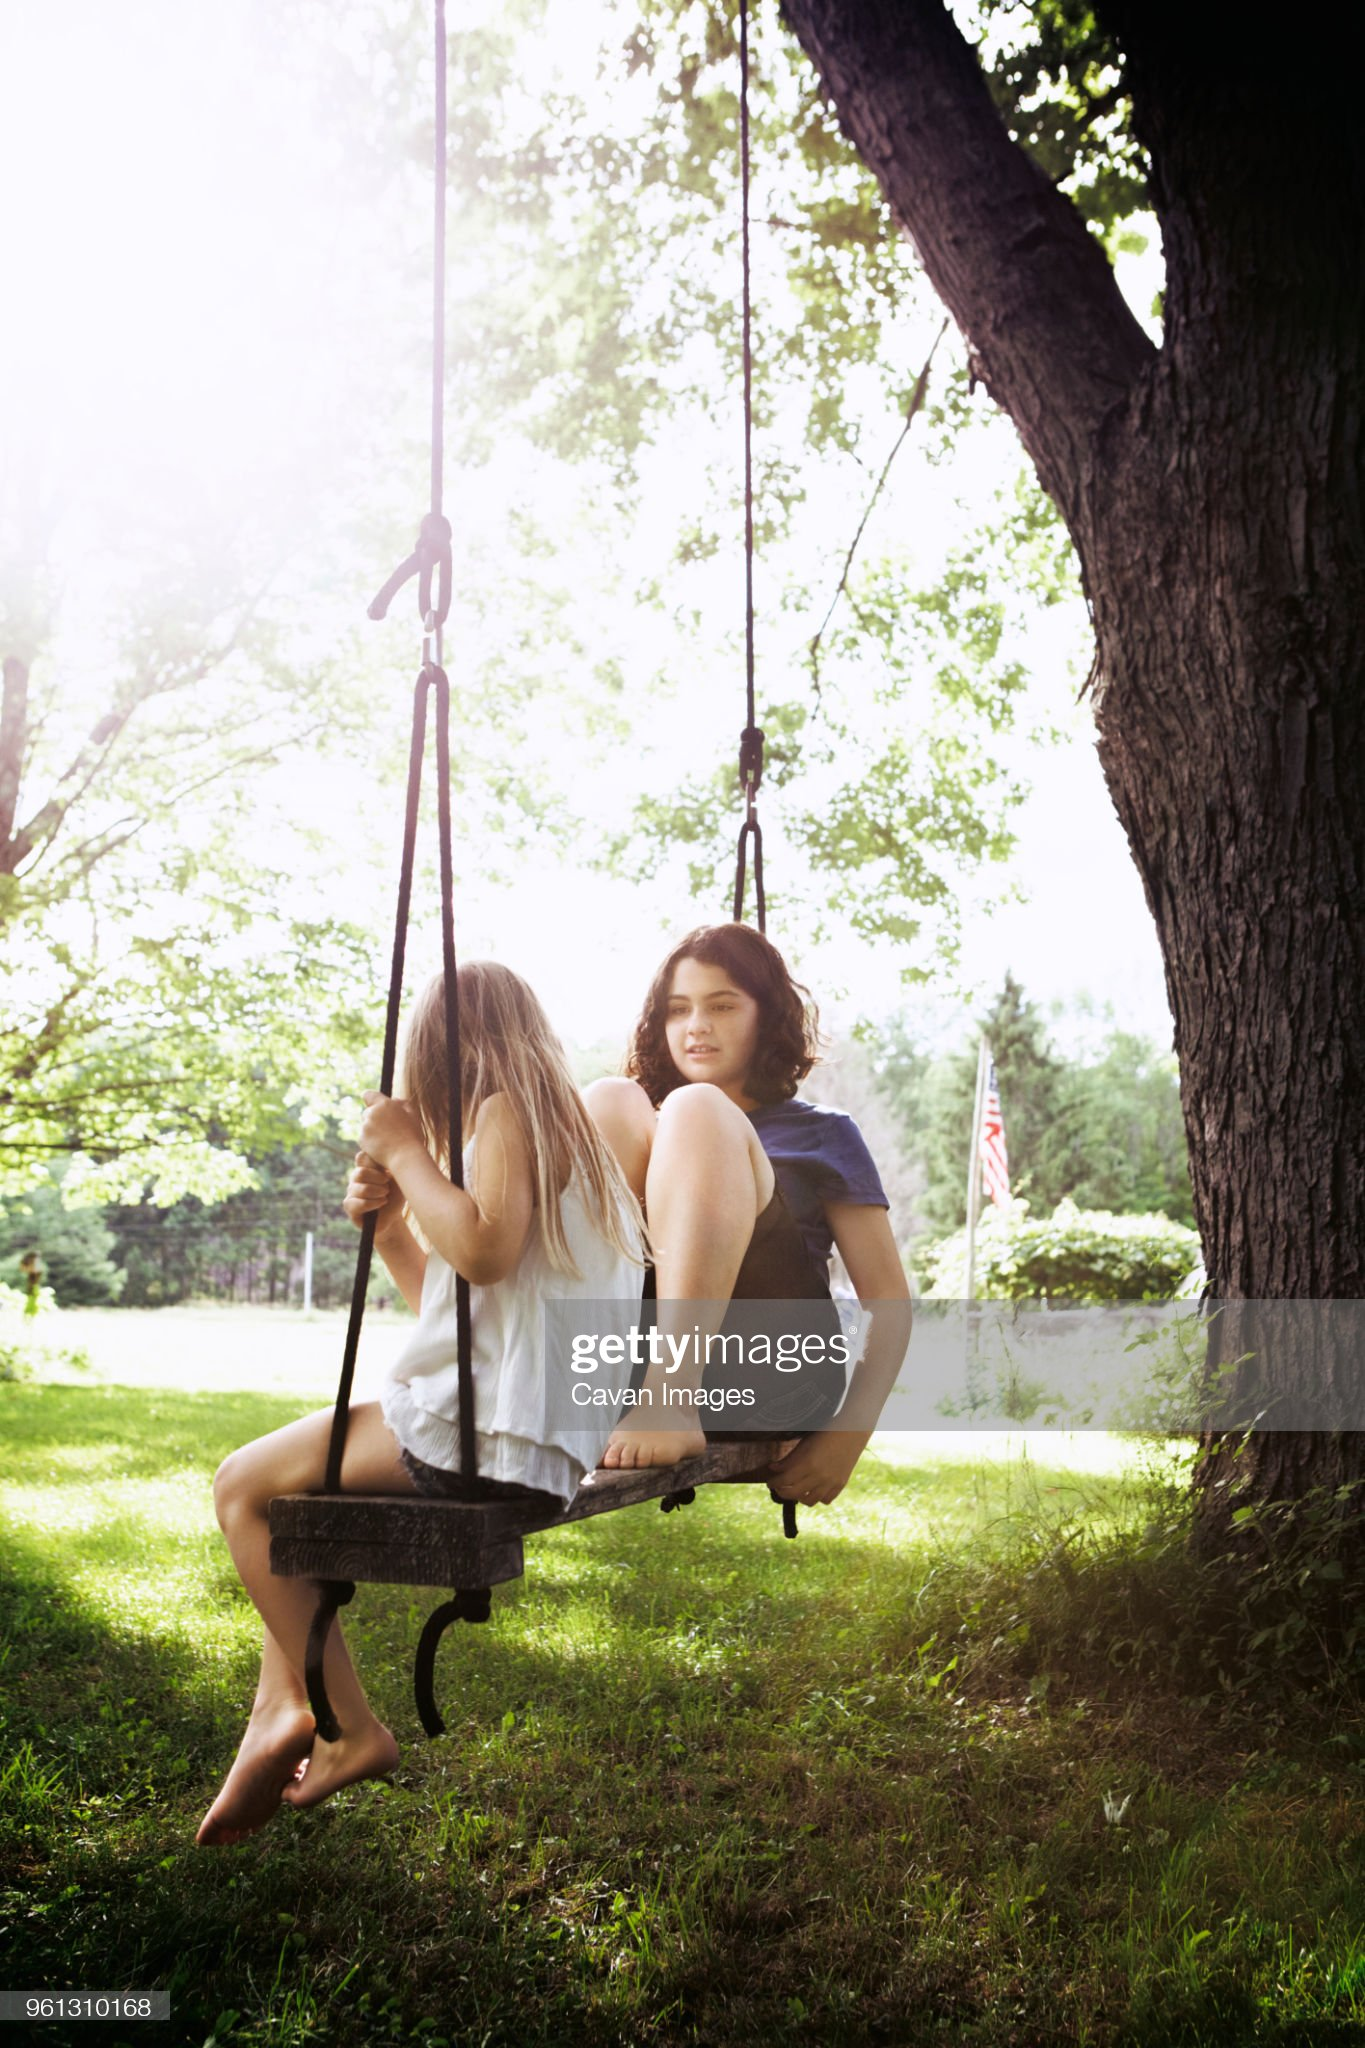 https://media.gettyimages.com/photos/sisters-sitting-on-swing-at-grass-field-picture-id961310168?s=2048x2048